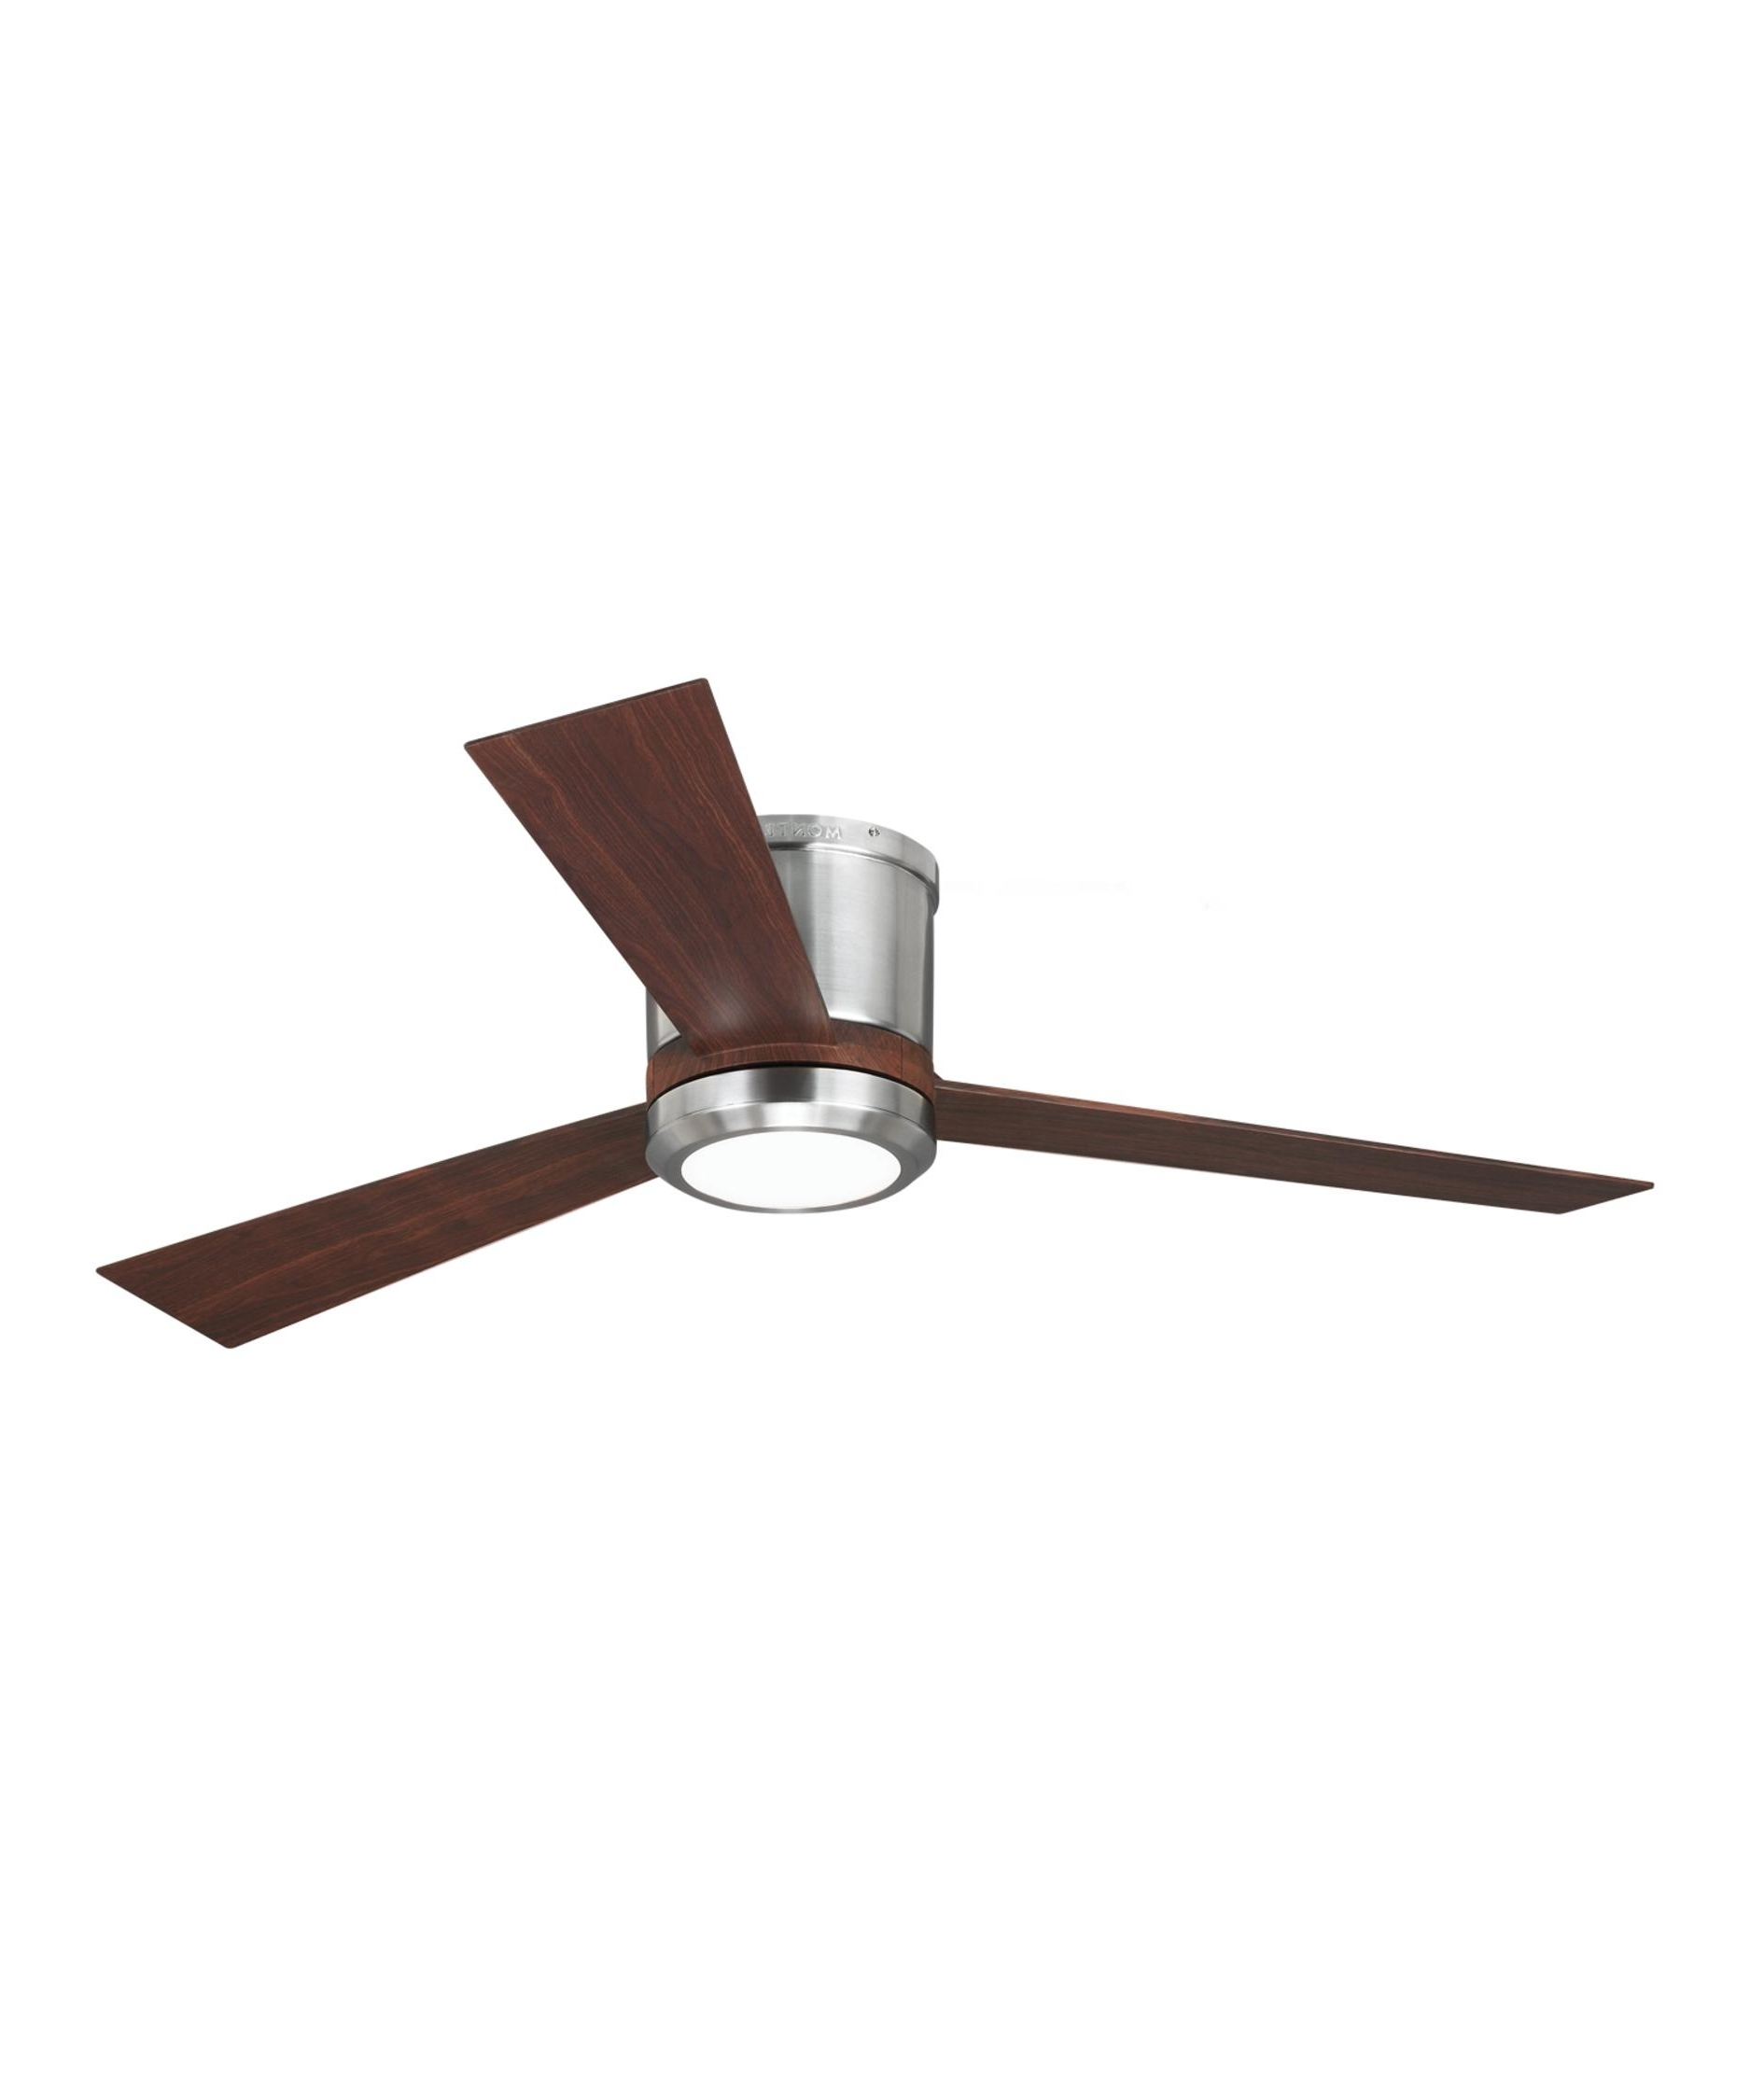 36 Inch Ceiling Fan With Light Flush Mount – Tariqalhanaee In 2019 36 Inch Outdoor Ceiling Fans With Light Flush Mount (View 3 of 20)